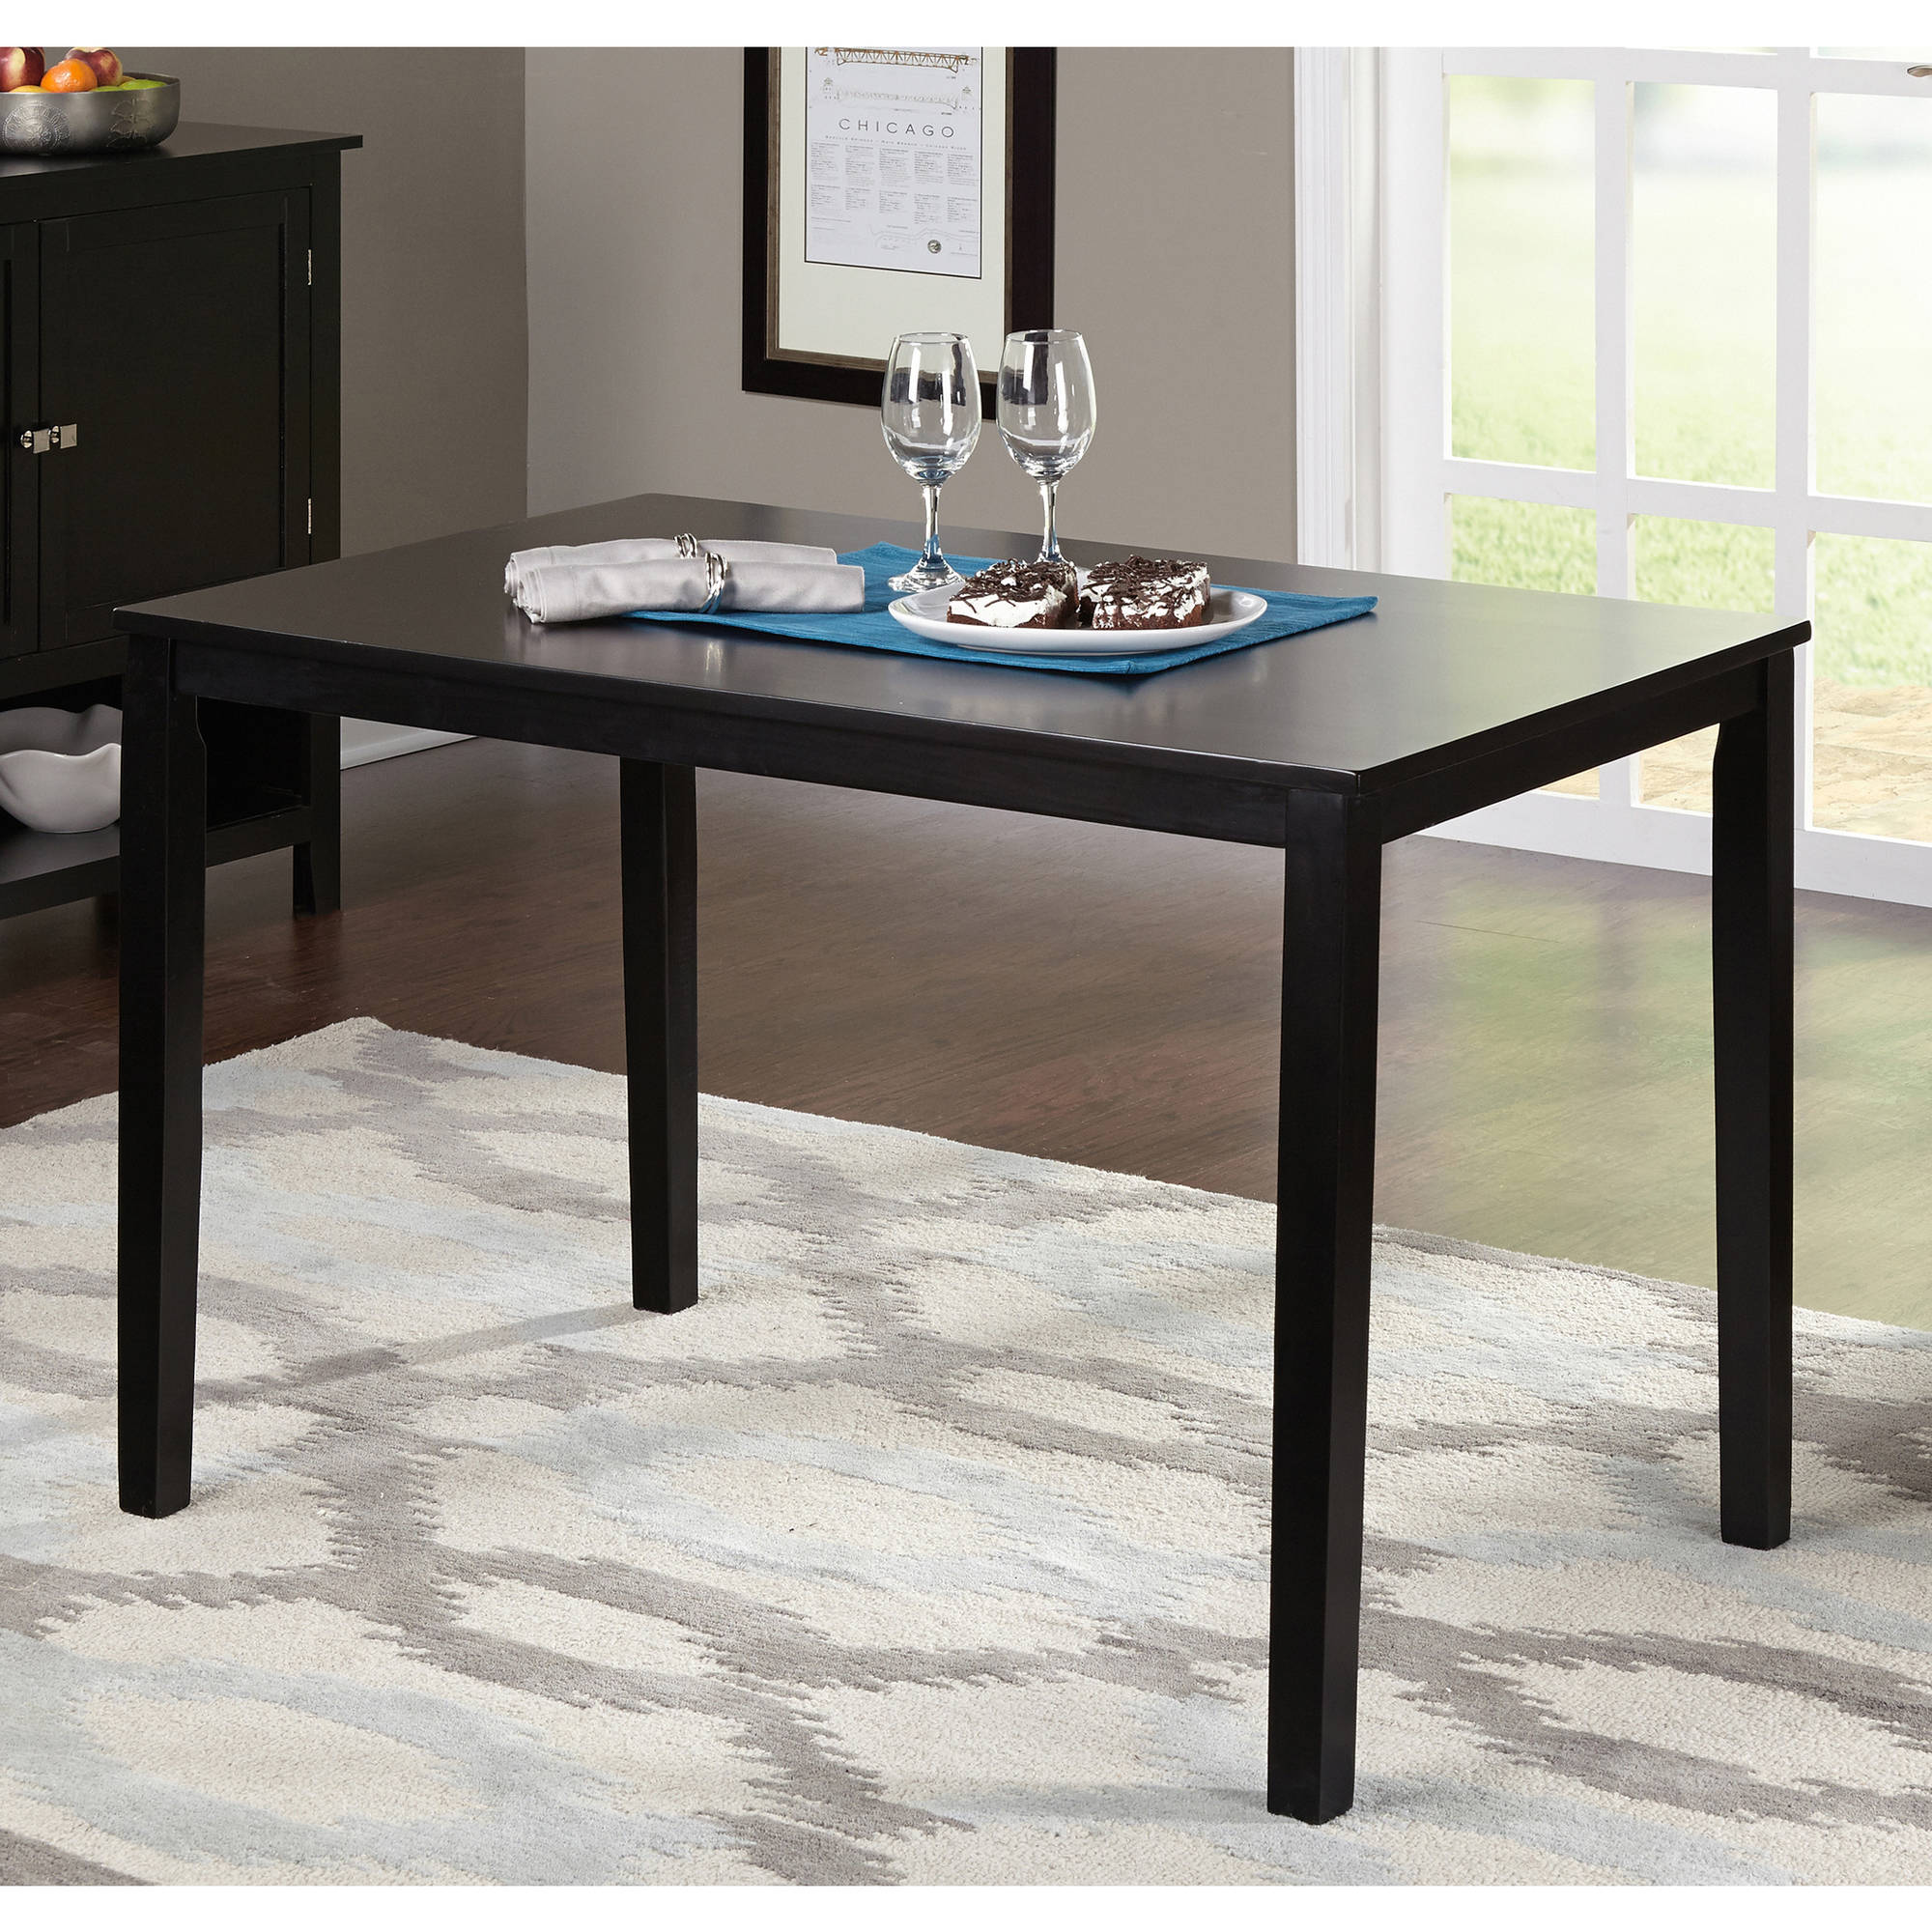 TMS Contemporary Dining Table, Multiple Finishes - Walmart.com